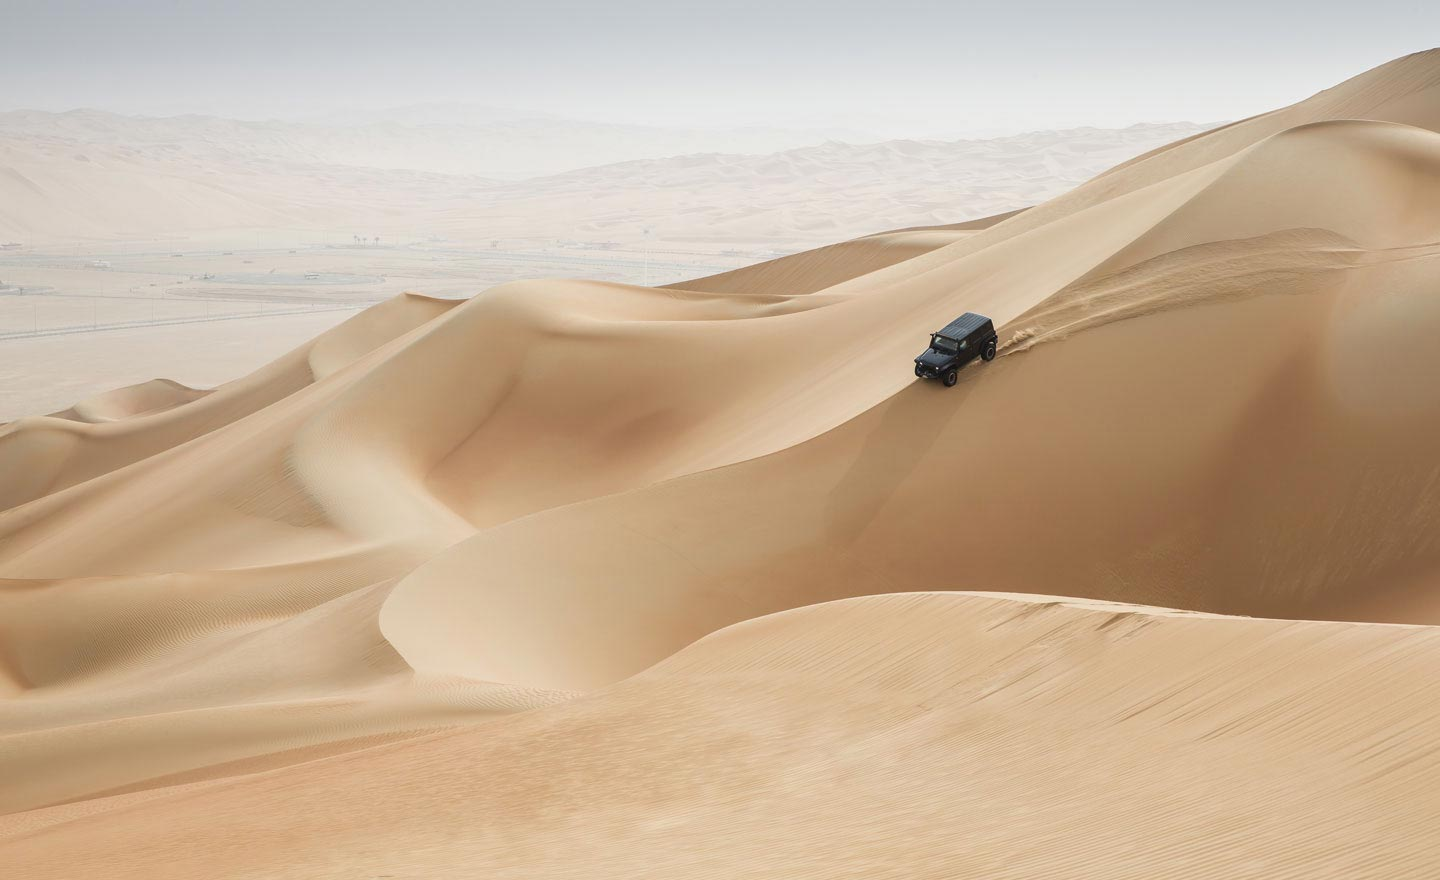 OFF-ROAD DRIVING TIPS FOR A 4X4 DESERT ADVENTURE